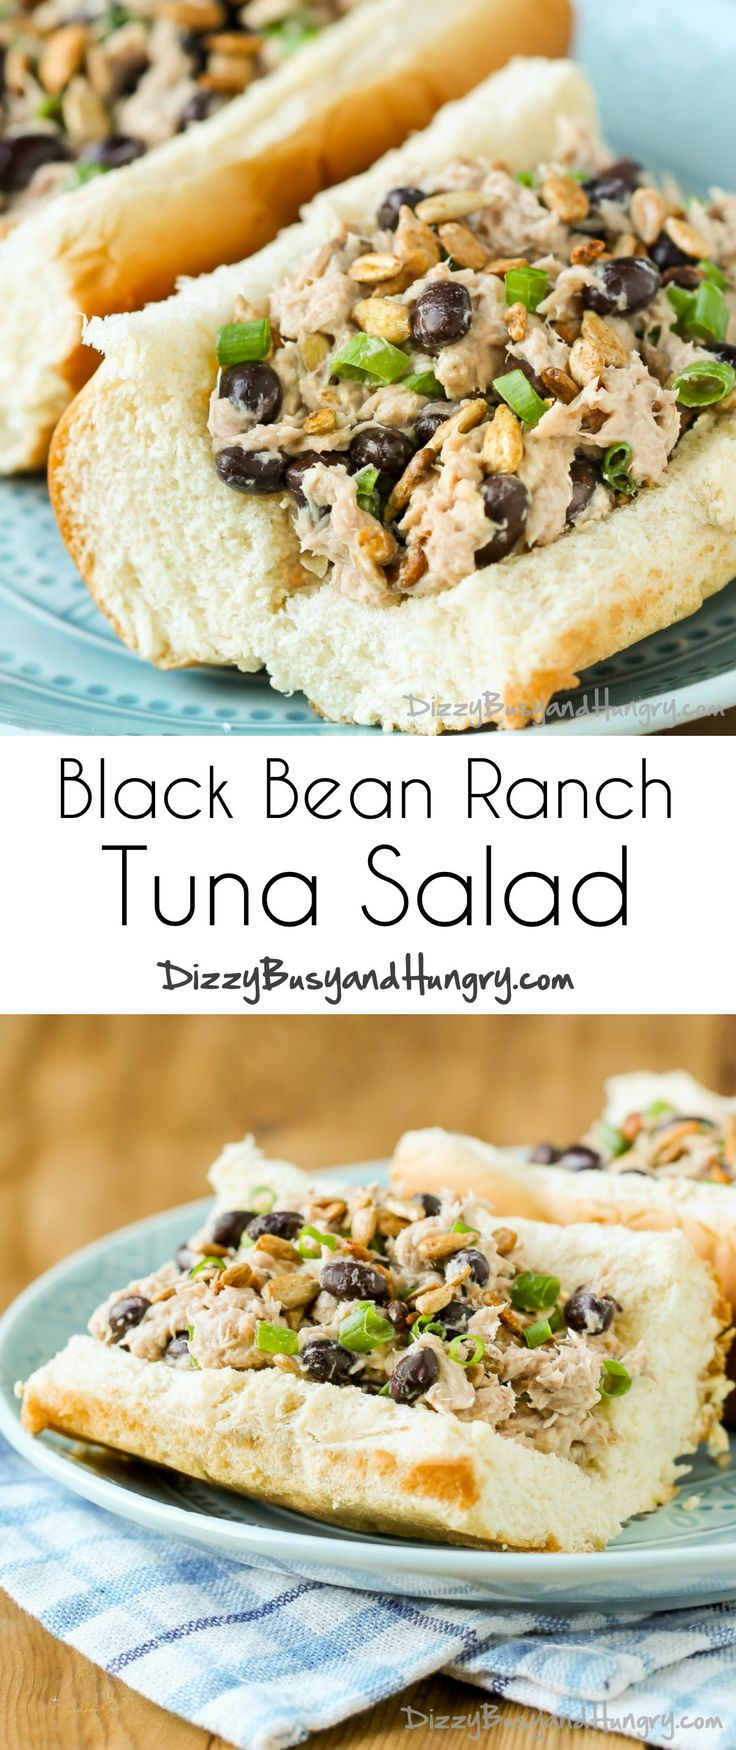 Black Bean Ranch Tuna Salad | DizzyBusyandHungry.com - Tired of the same old lunch? Try this super-tasty and nutritious tuna salad!